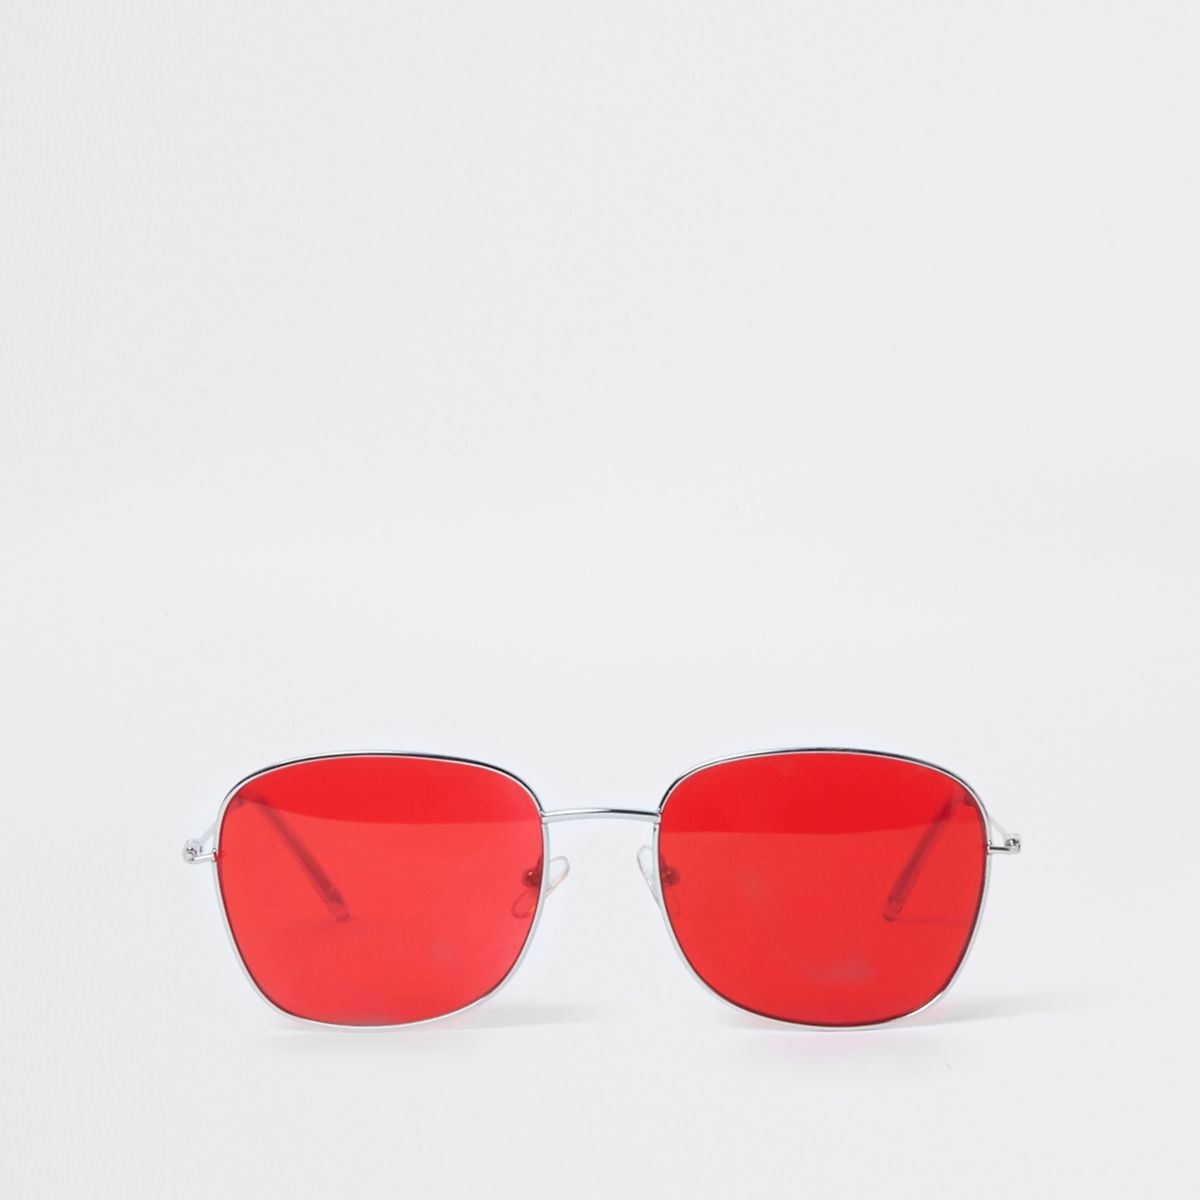 Silver tone square red lens sunglasses